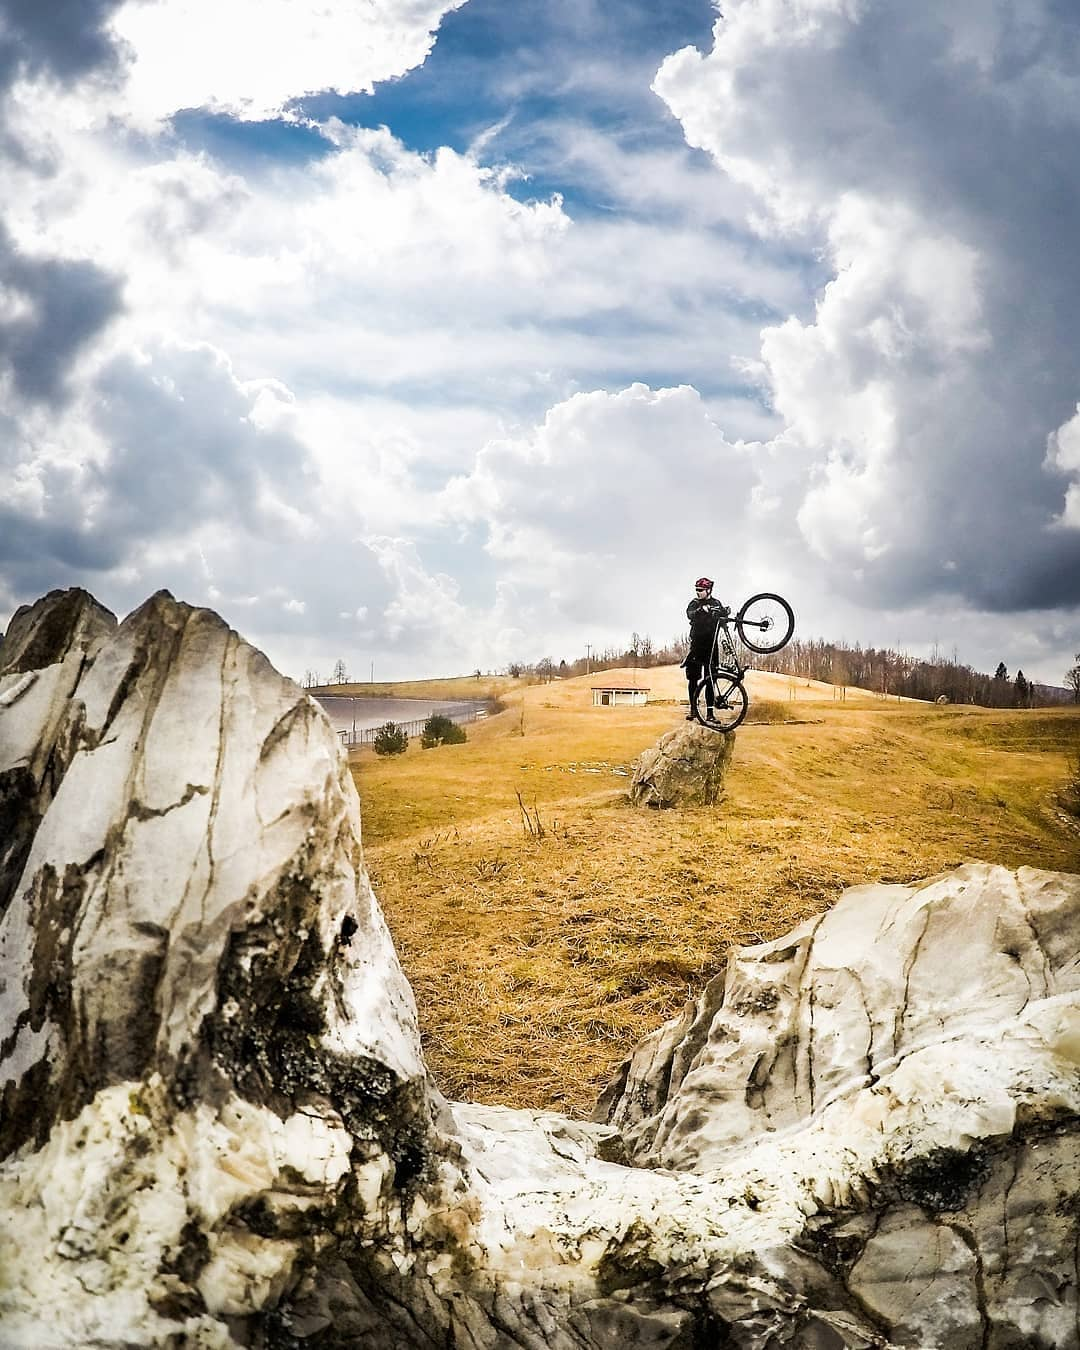 Warmer days are coming ... so, it's time to dust off your bike for new adventures.   Thanks @madonch for sharing your photo with #ifeelsLOVEnia.